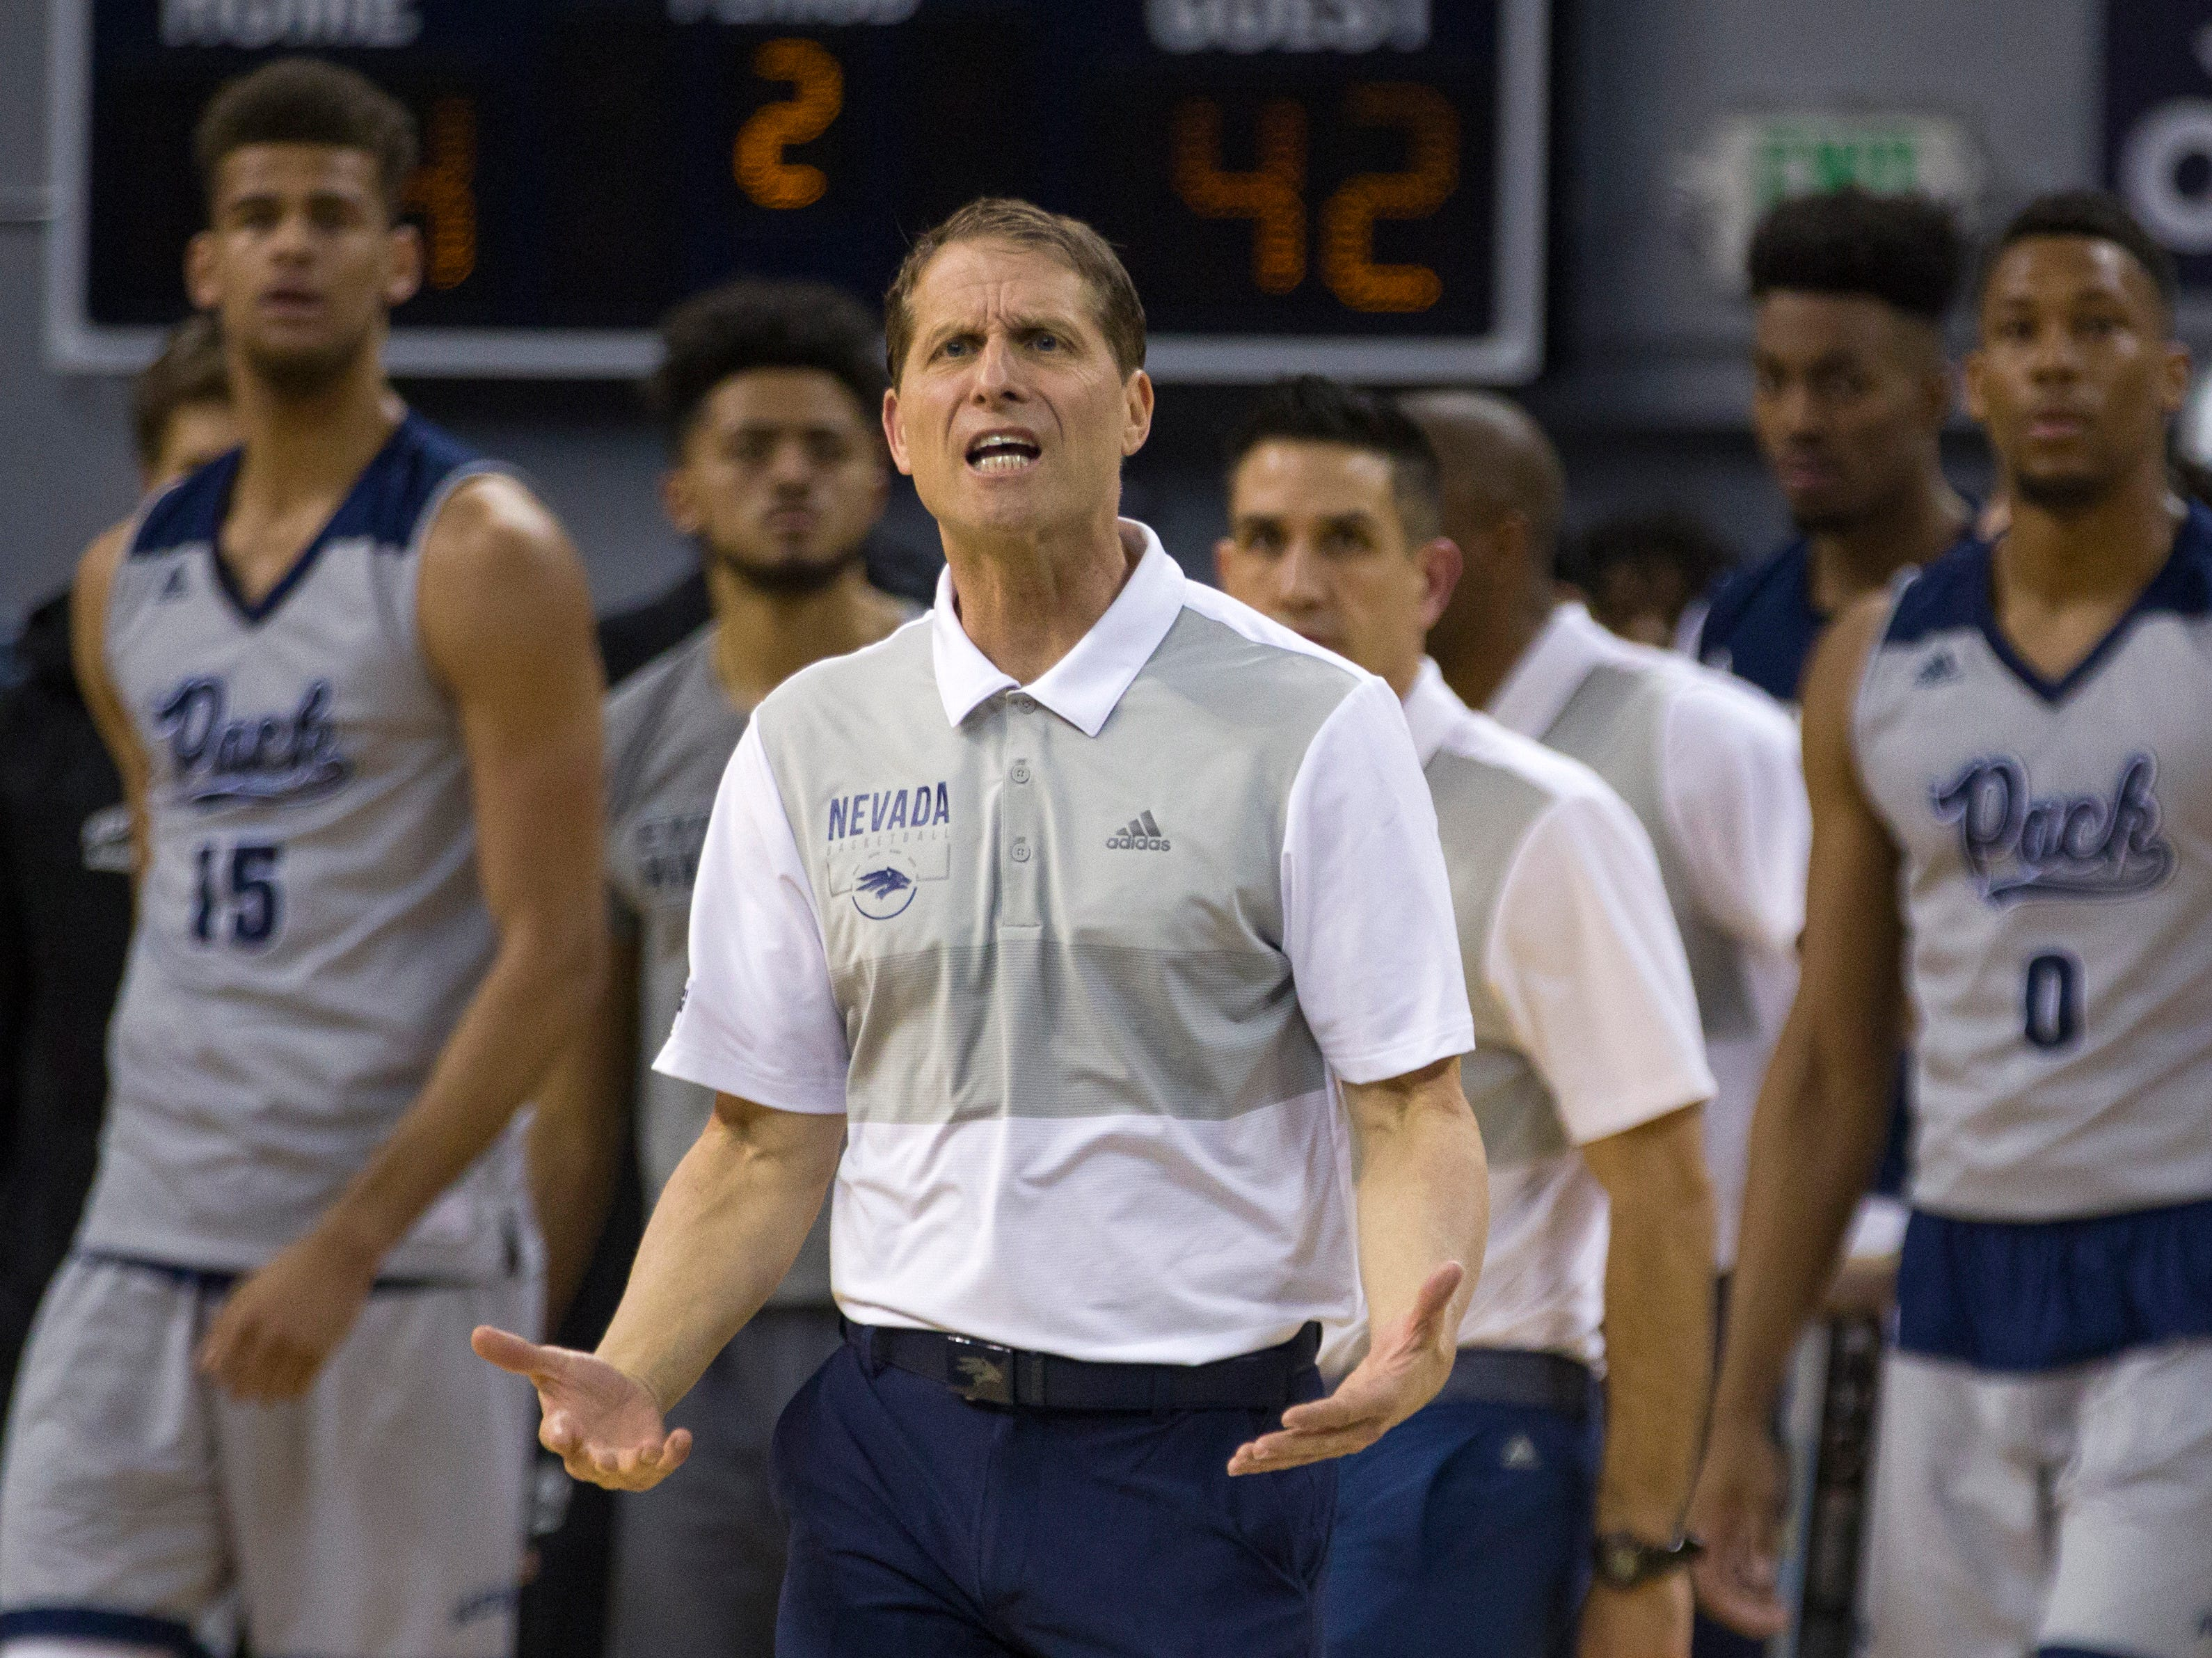 Nevada head coach Eric Musselman is unhappy with a call in the second half of an NCAA college basketball game against Boise State in Reno, Nev., Saturday, Feb. 2, 2019. (AP Photo/Tom R. Smedes)